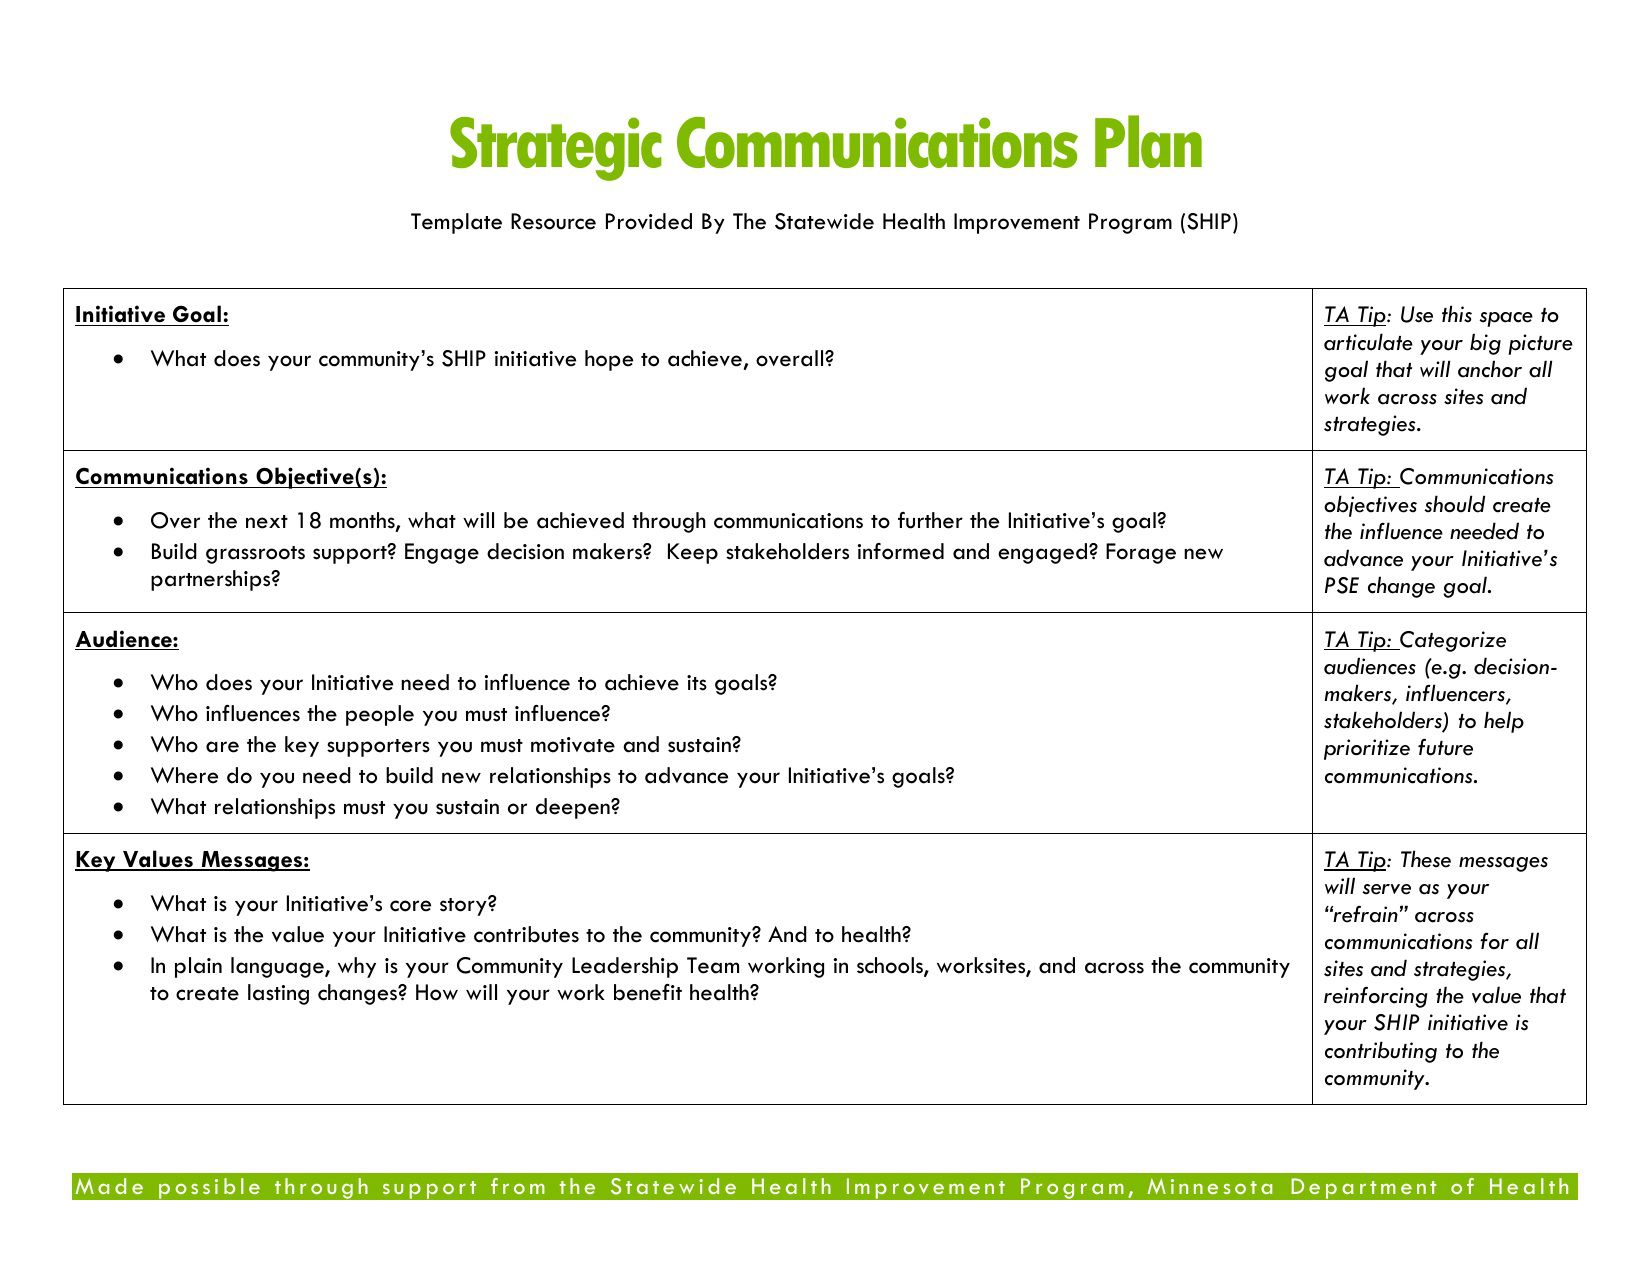 004 Impressive Strategy Communication Plan Template Photo  Internal And Action ExampleFull